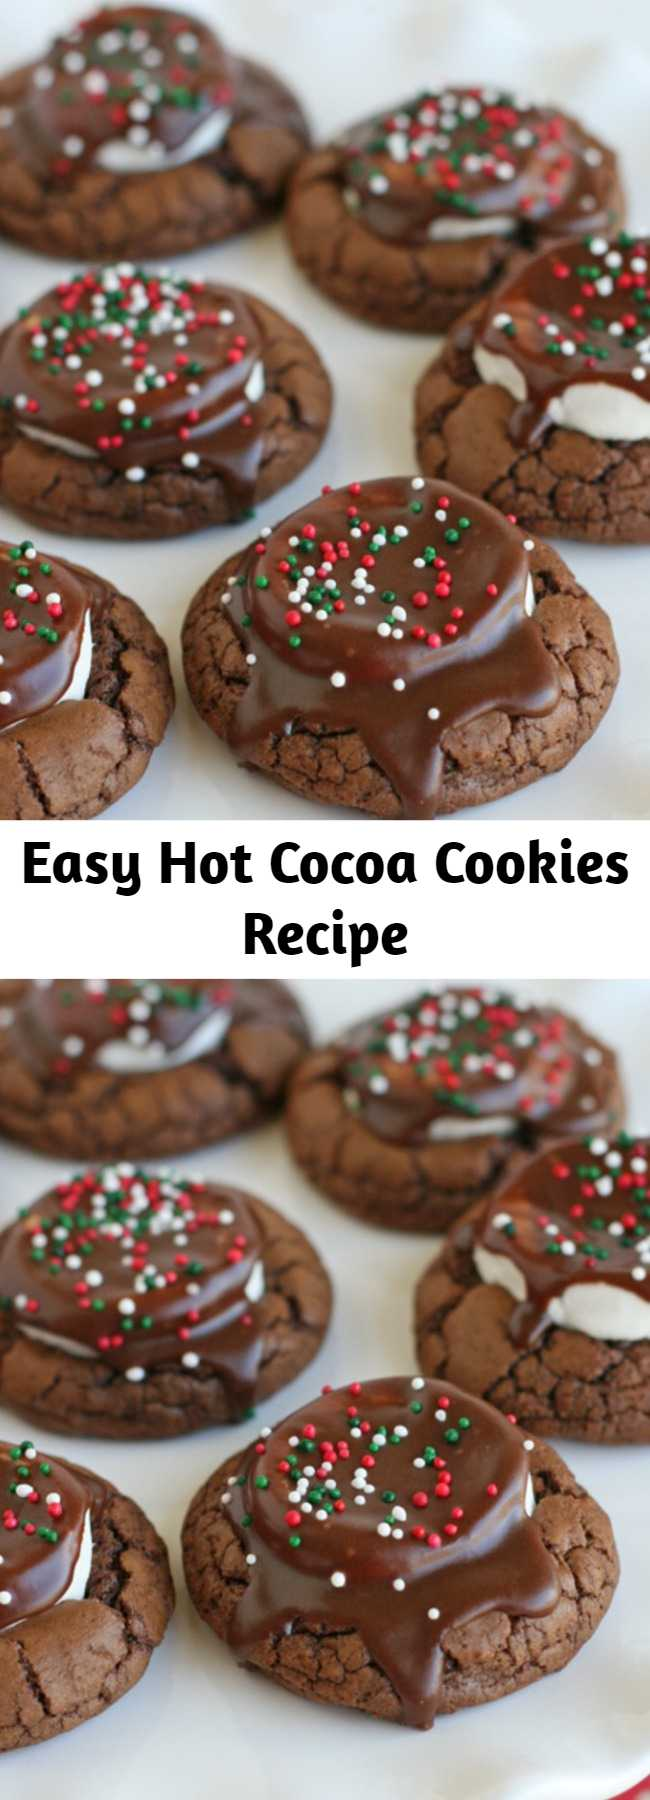 Easy Hot Cocoa Cookies Recipe - These Hot Cocoa Cookies are rich, chewy, chocolaty and oh so delicious! These are a perfect cookie for Christmas, or any time of year!